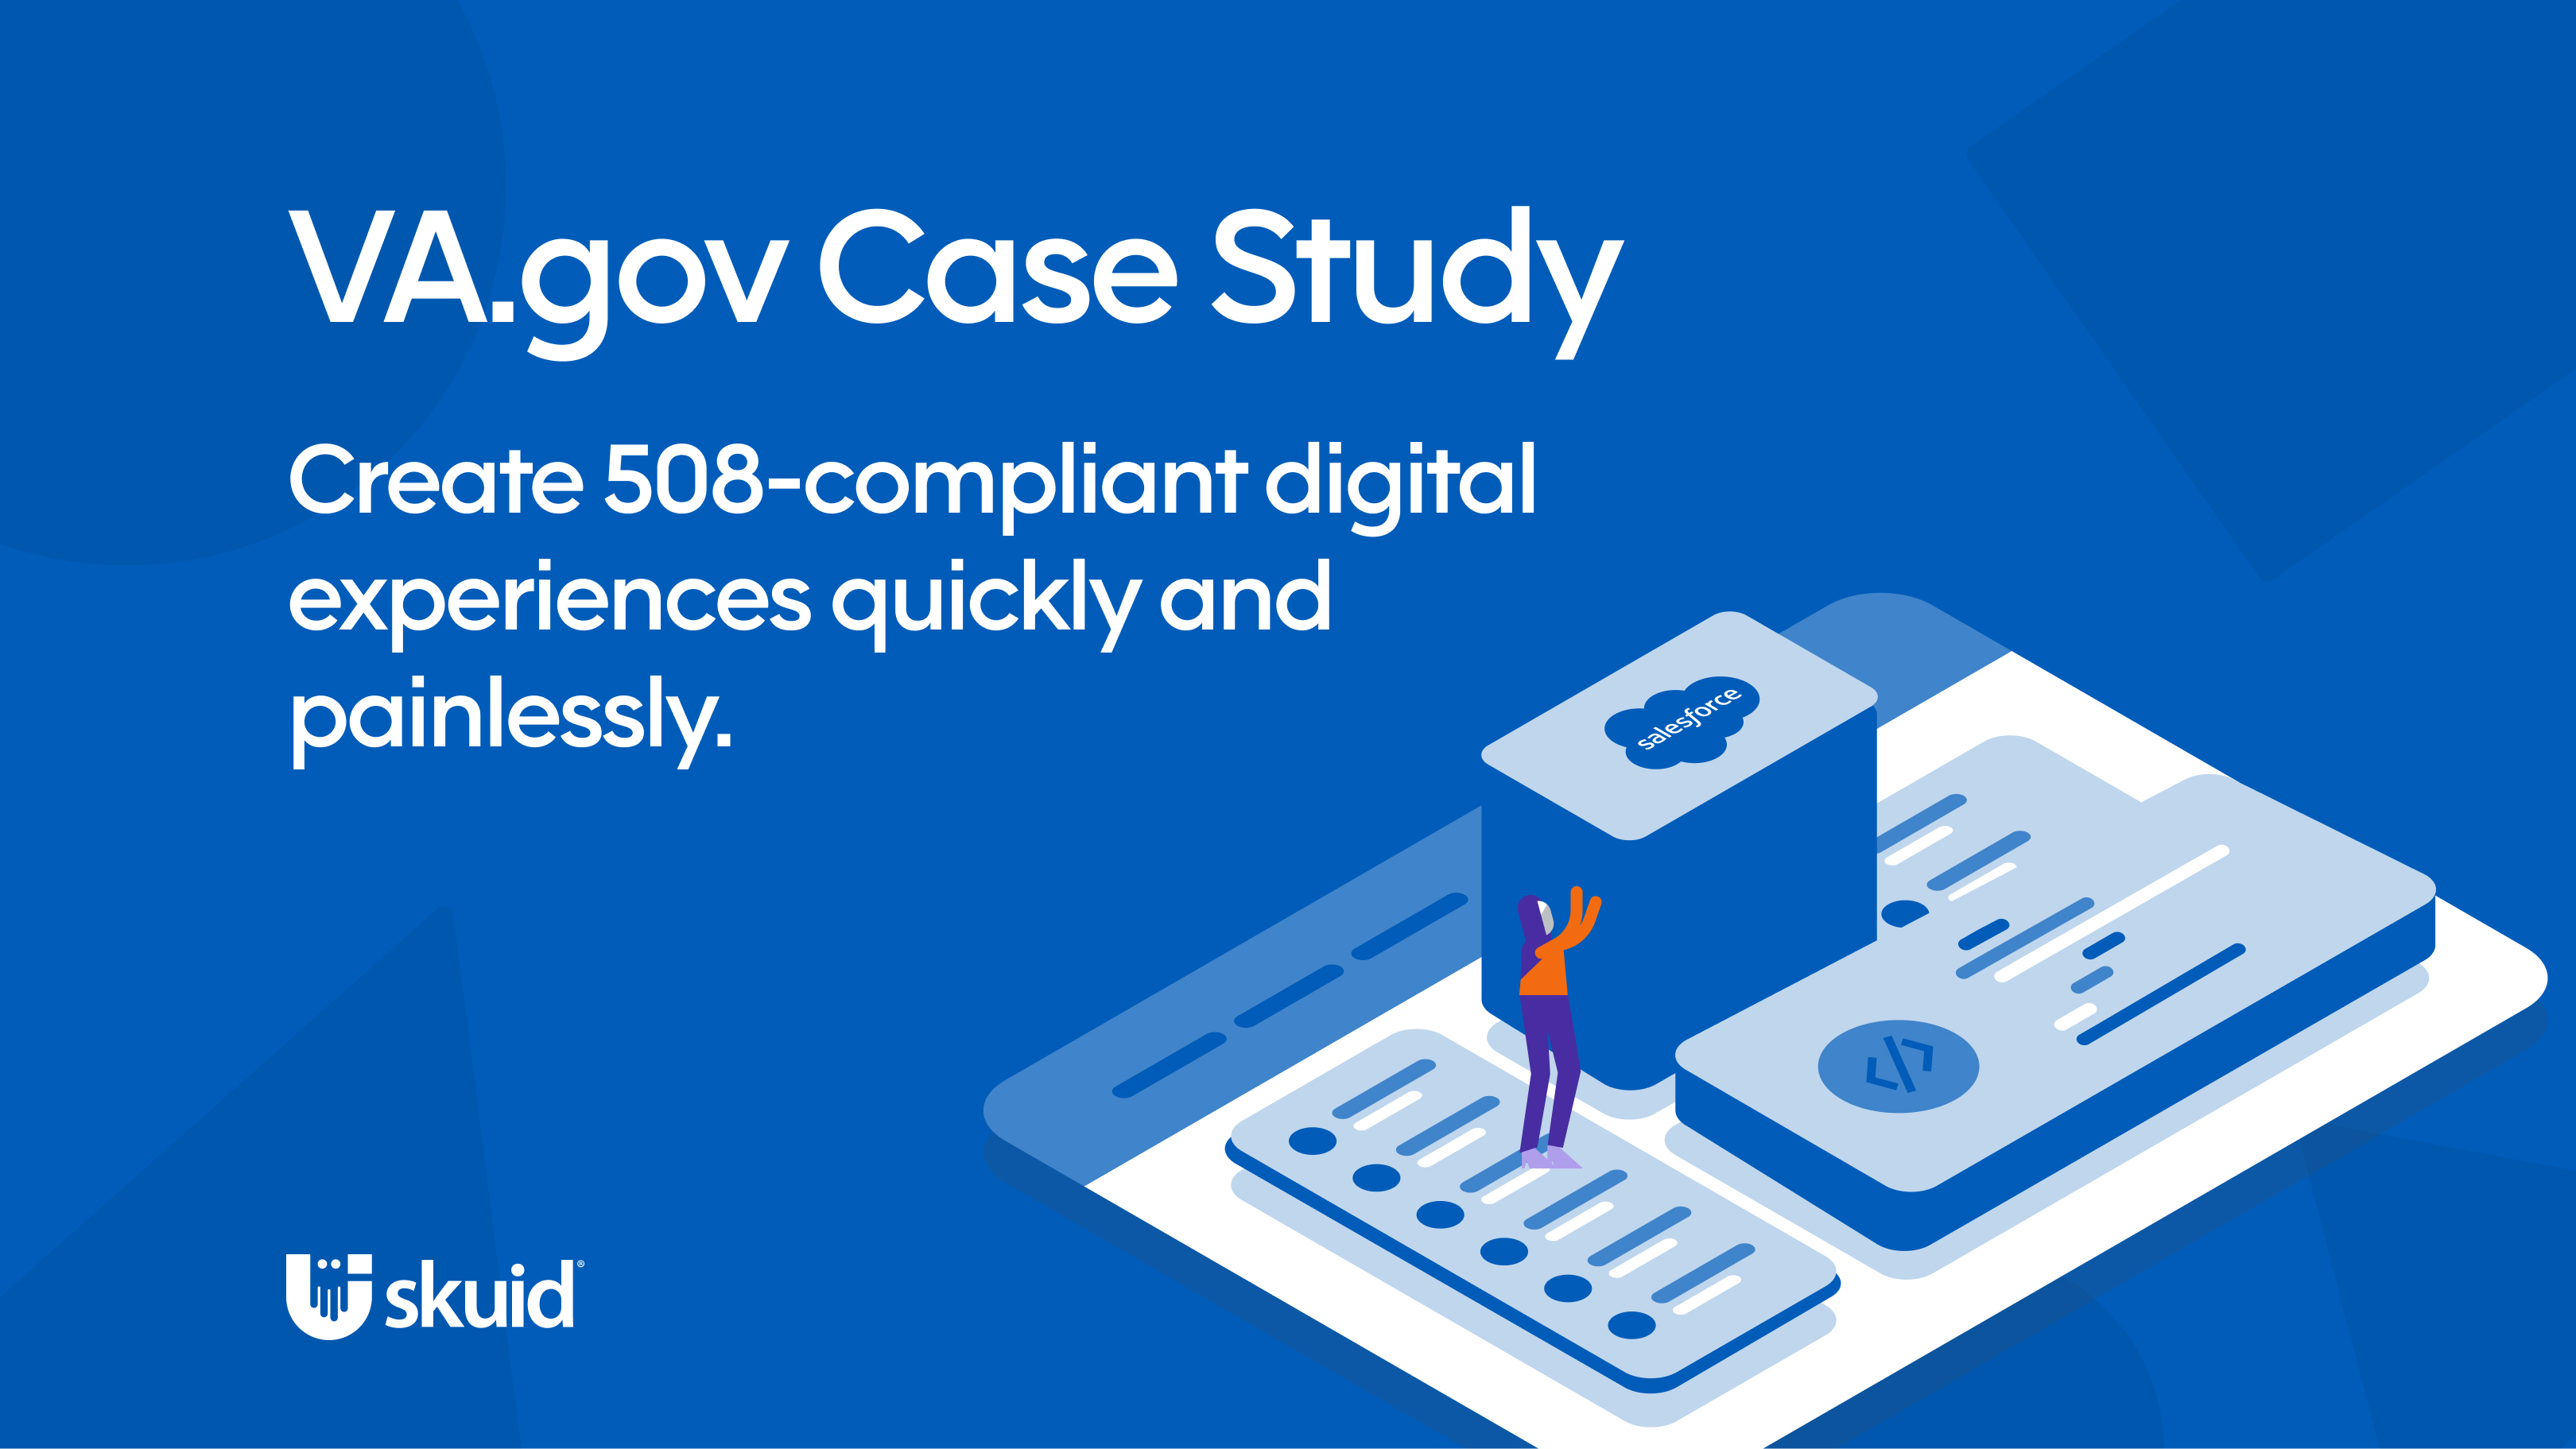 Create 508-compliant digital experiences quickly and painlessly.